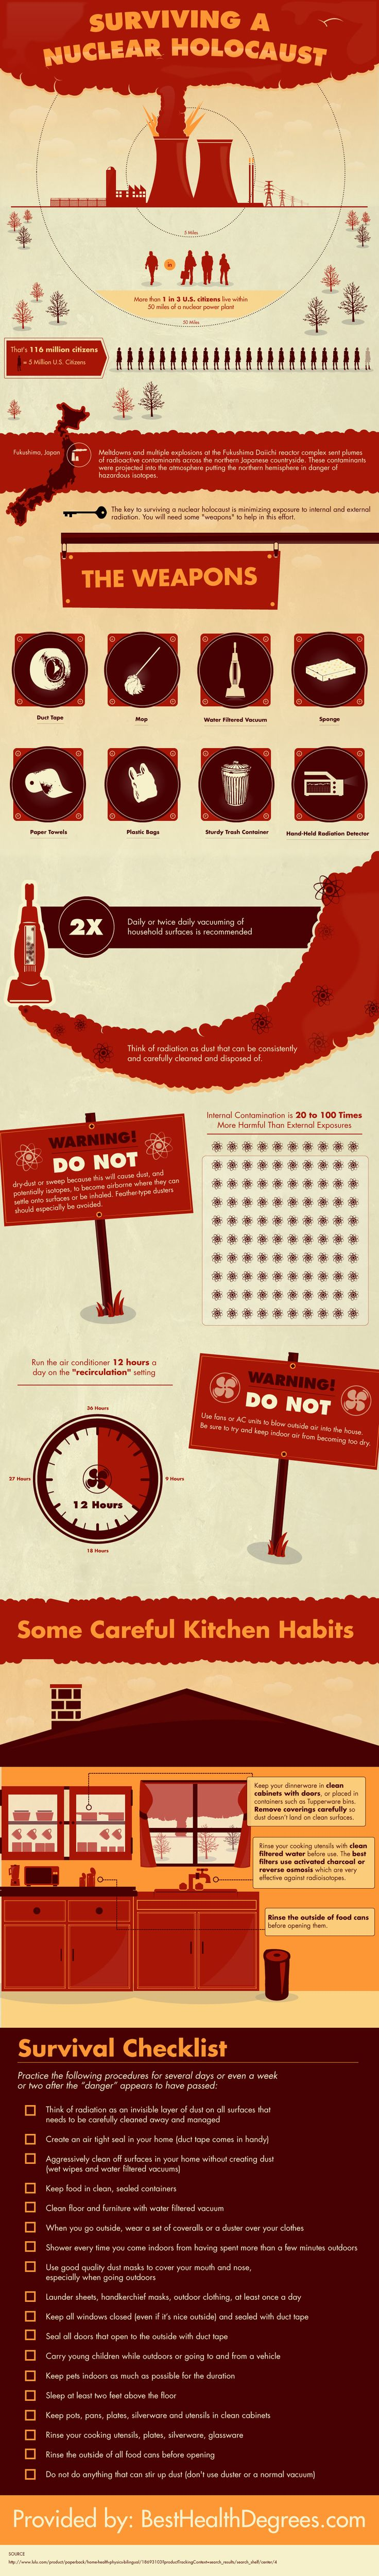 Surviving Nuclear Holocaust Infographic